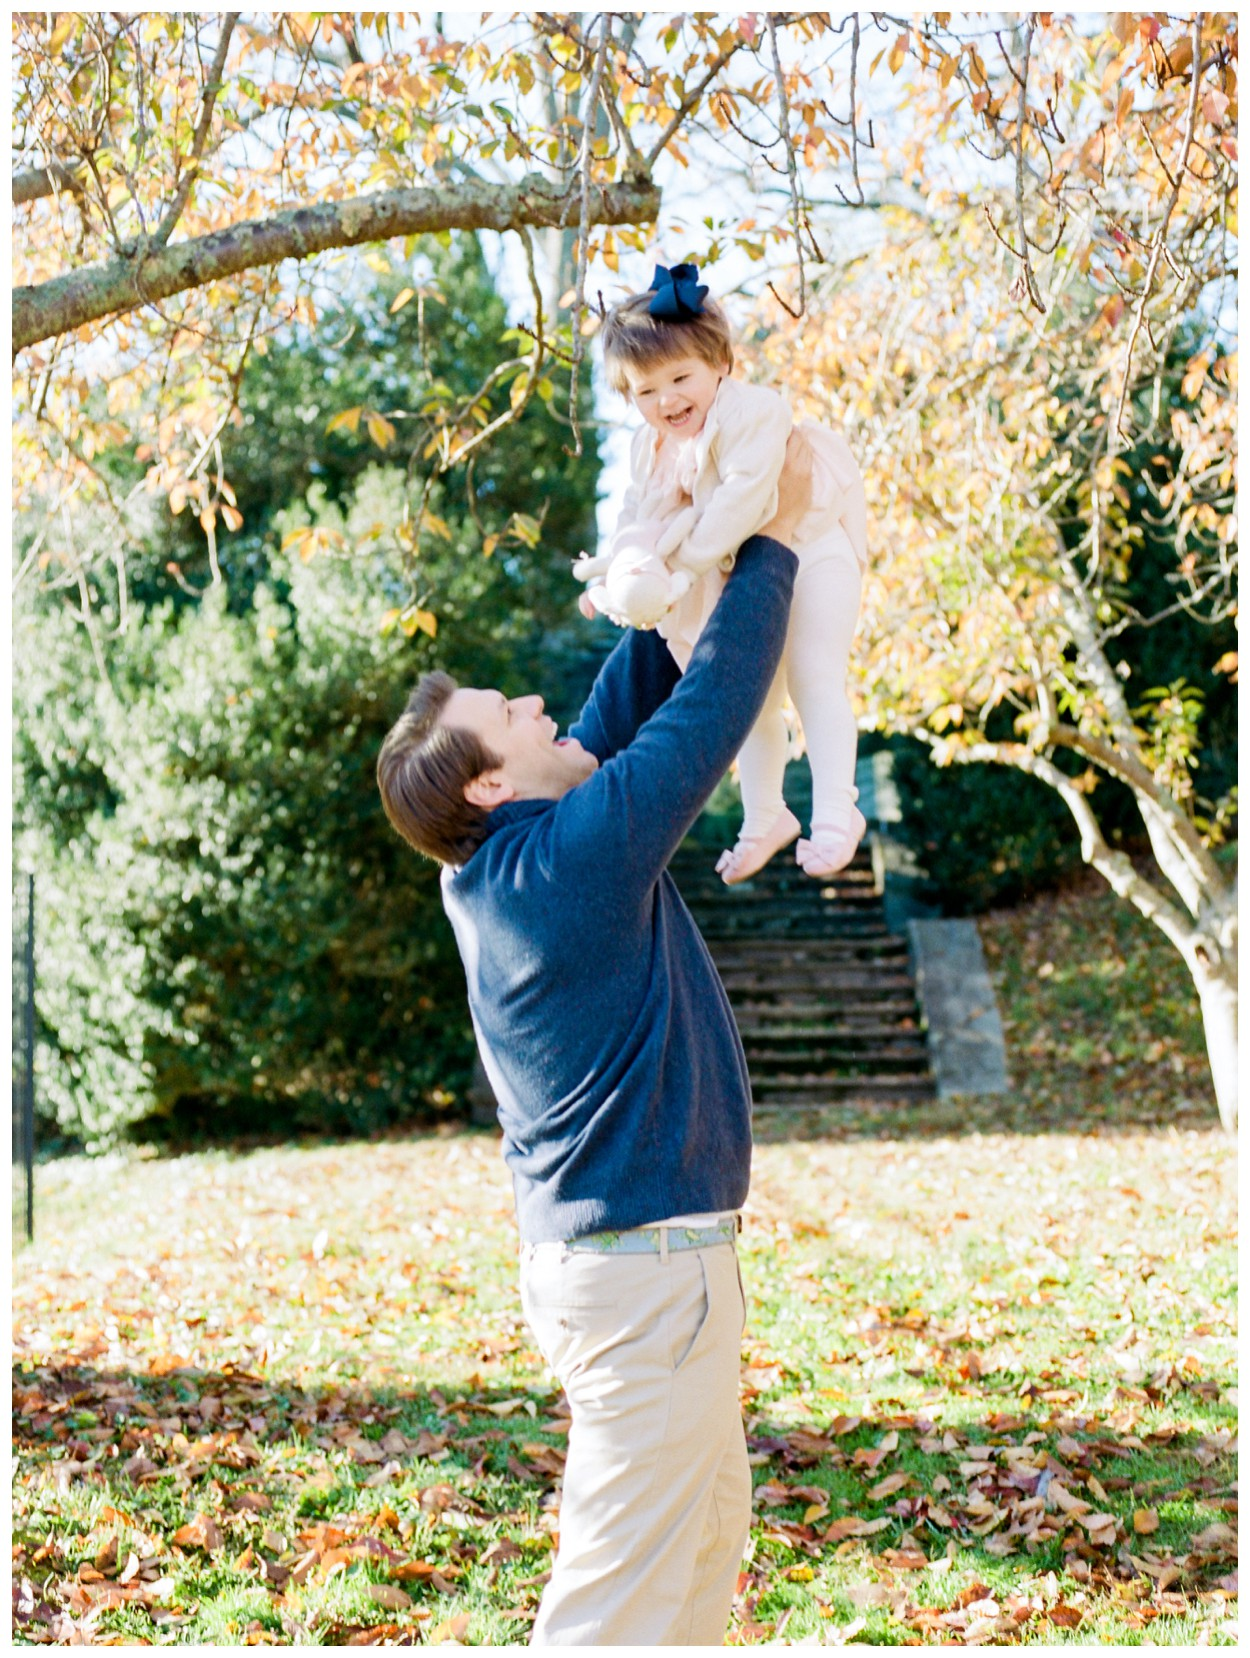 Family session on film at Glenview Mansion by fine art photographer Lissa Ryan Photography maternity